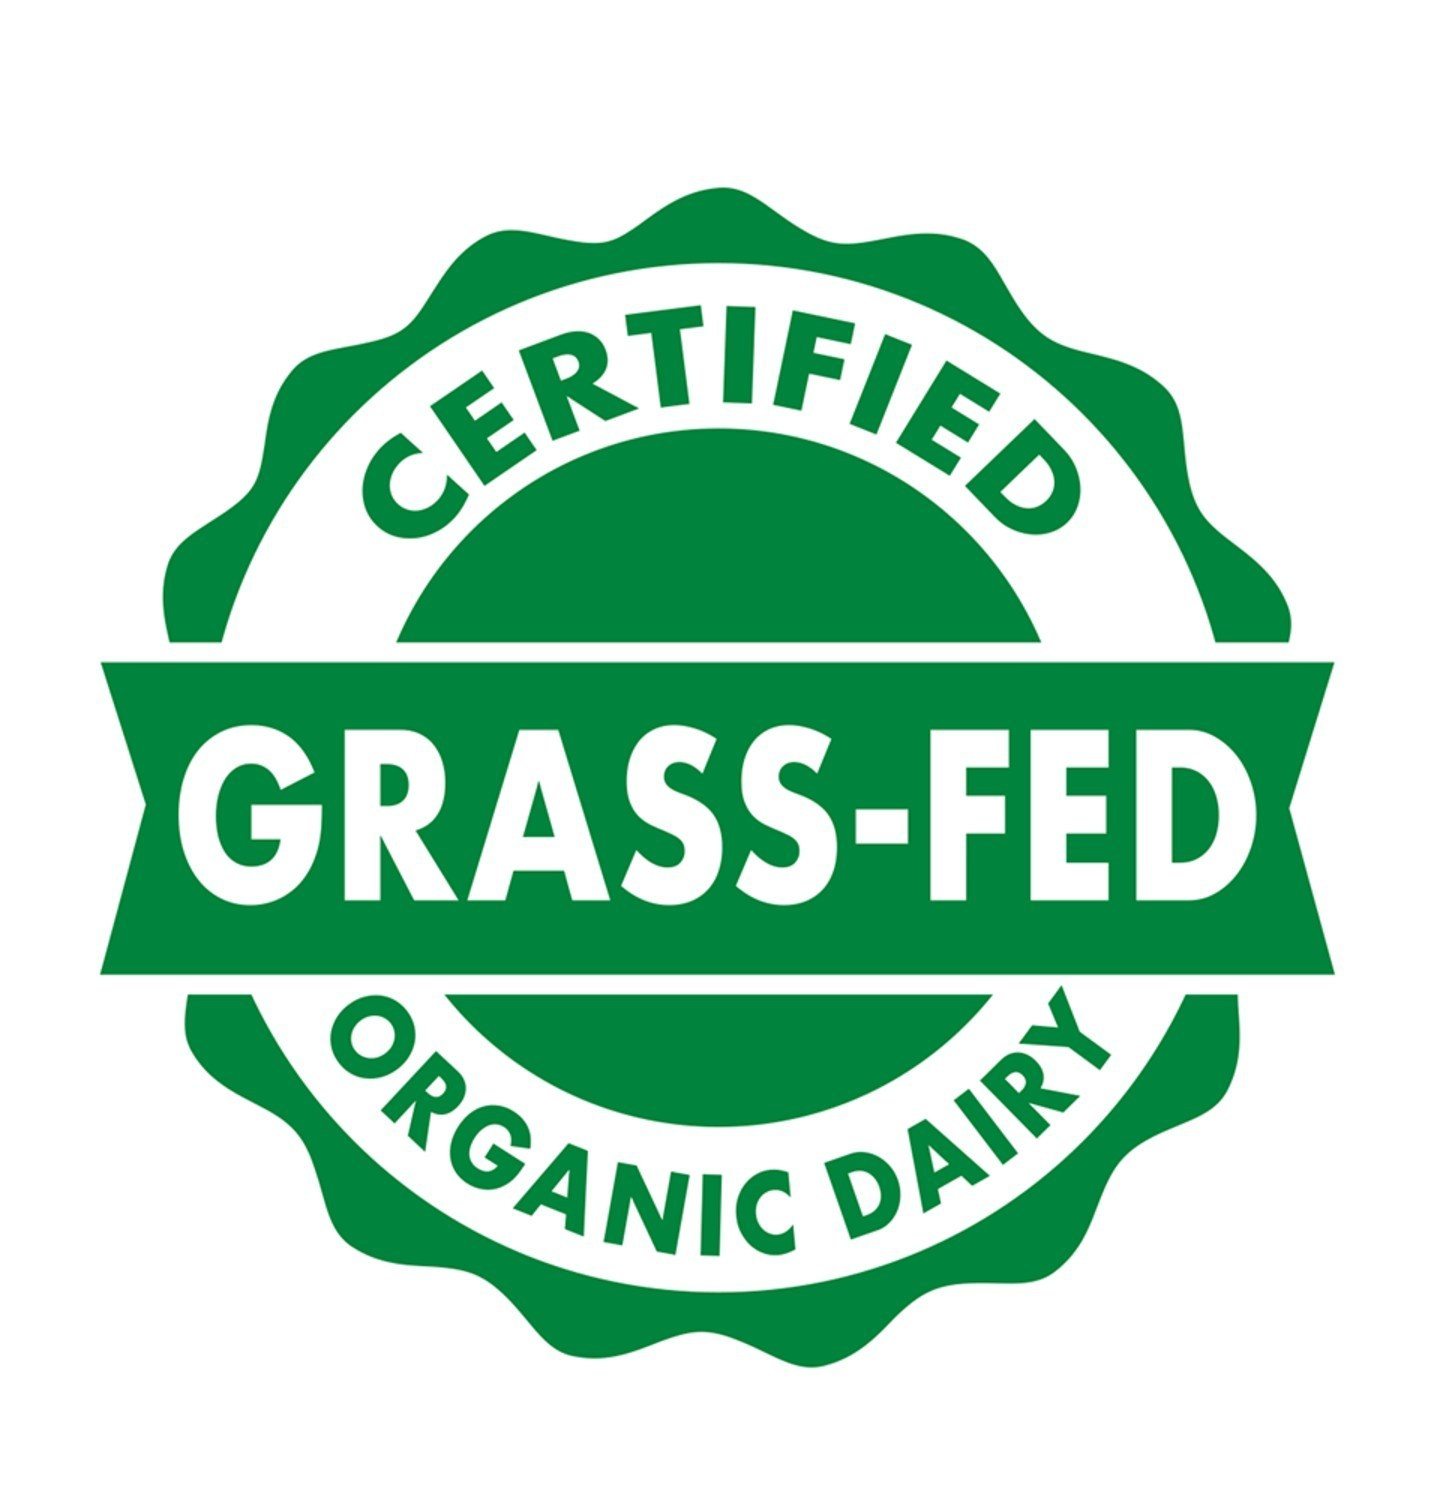 Quality Certification Services – Organic and Food Safety